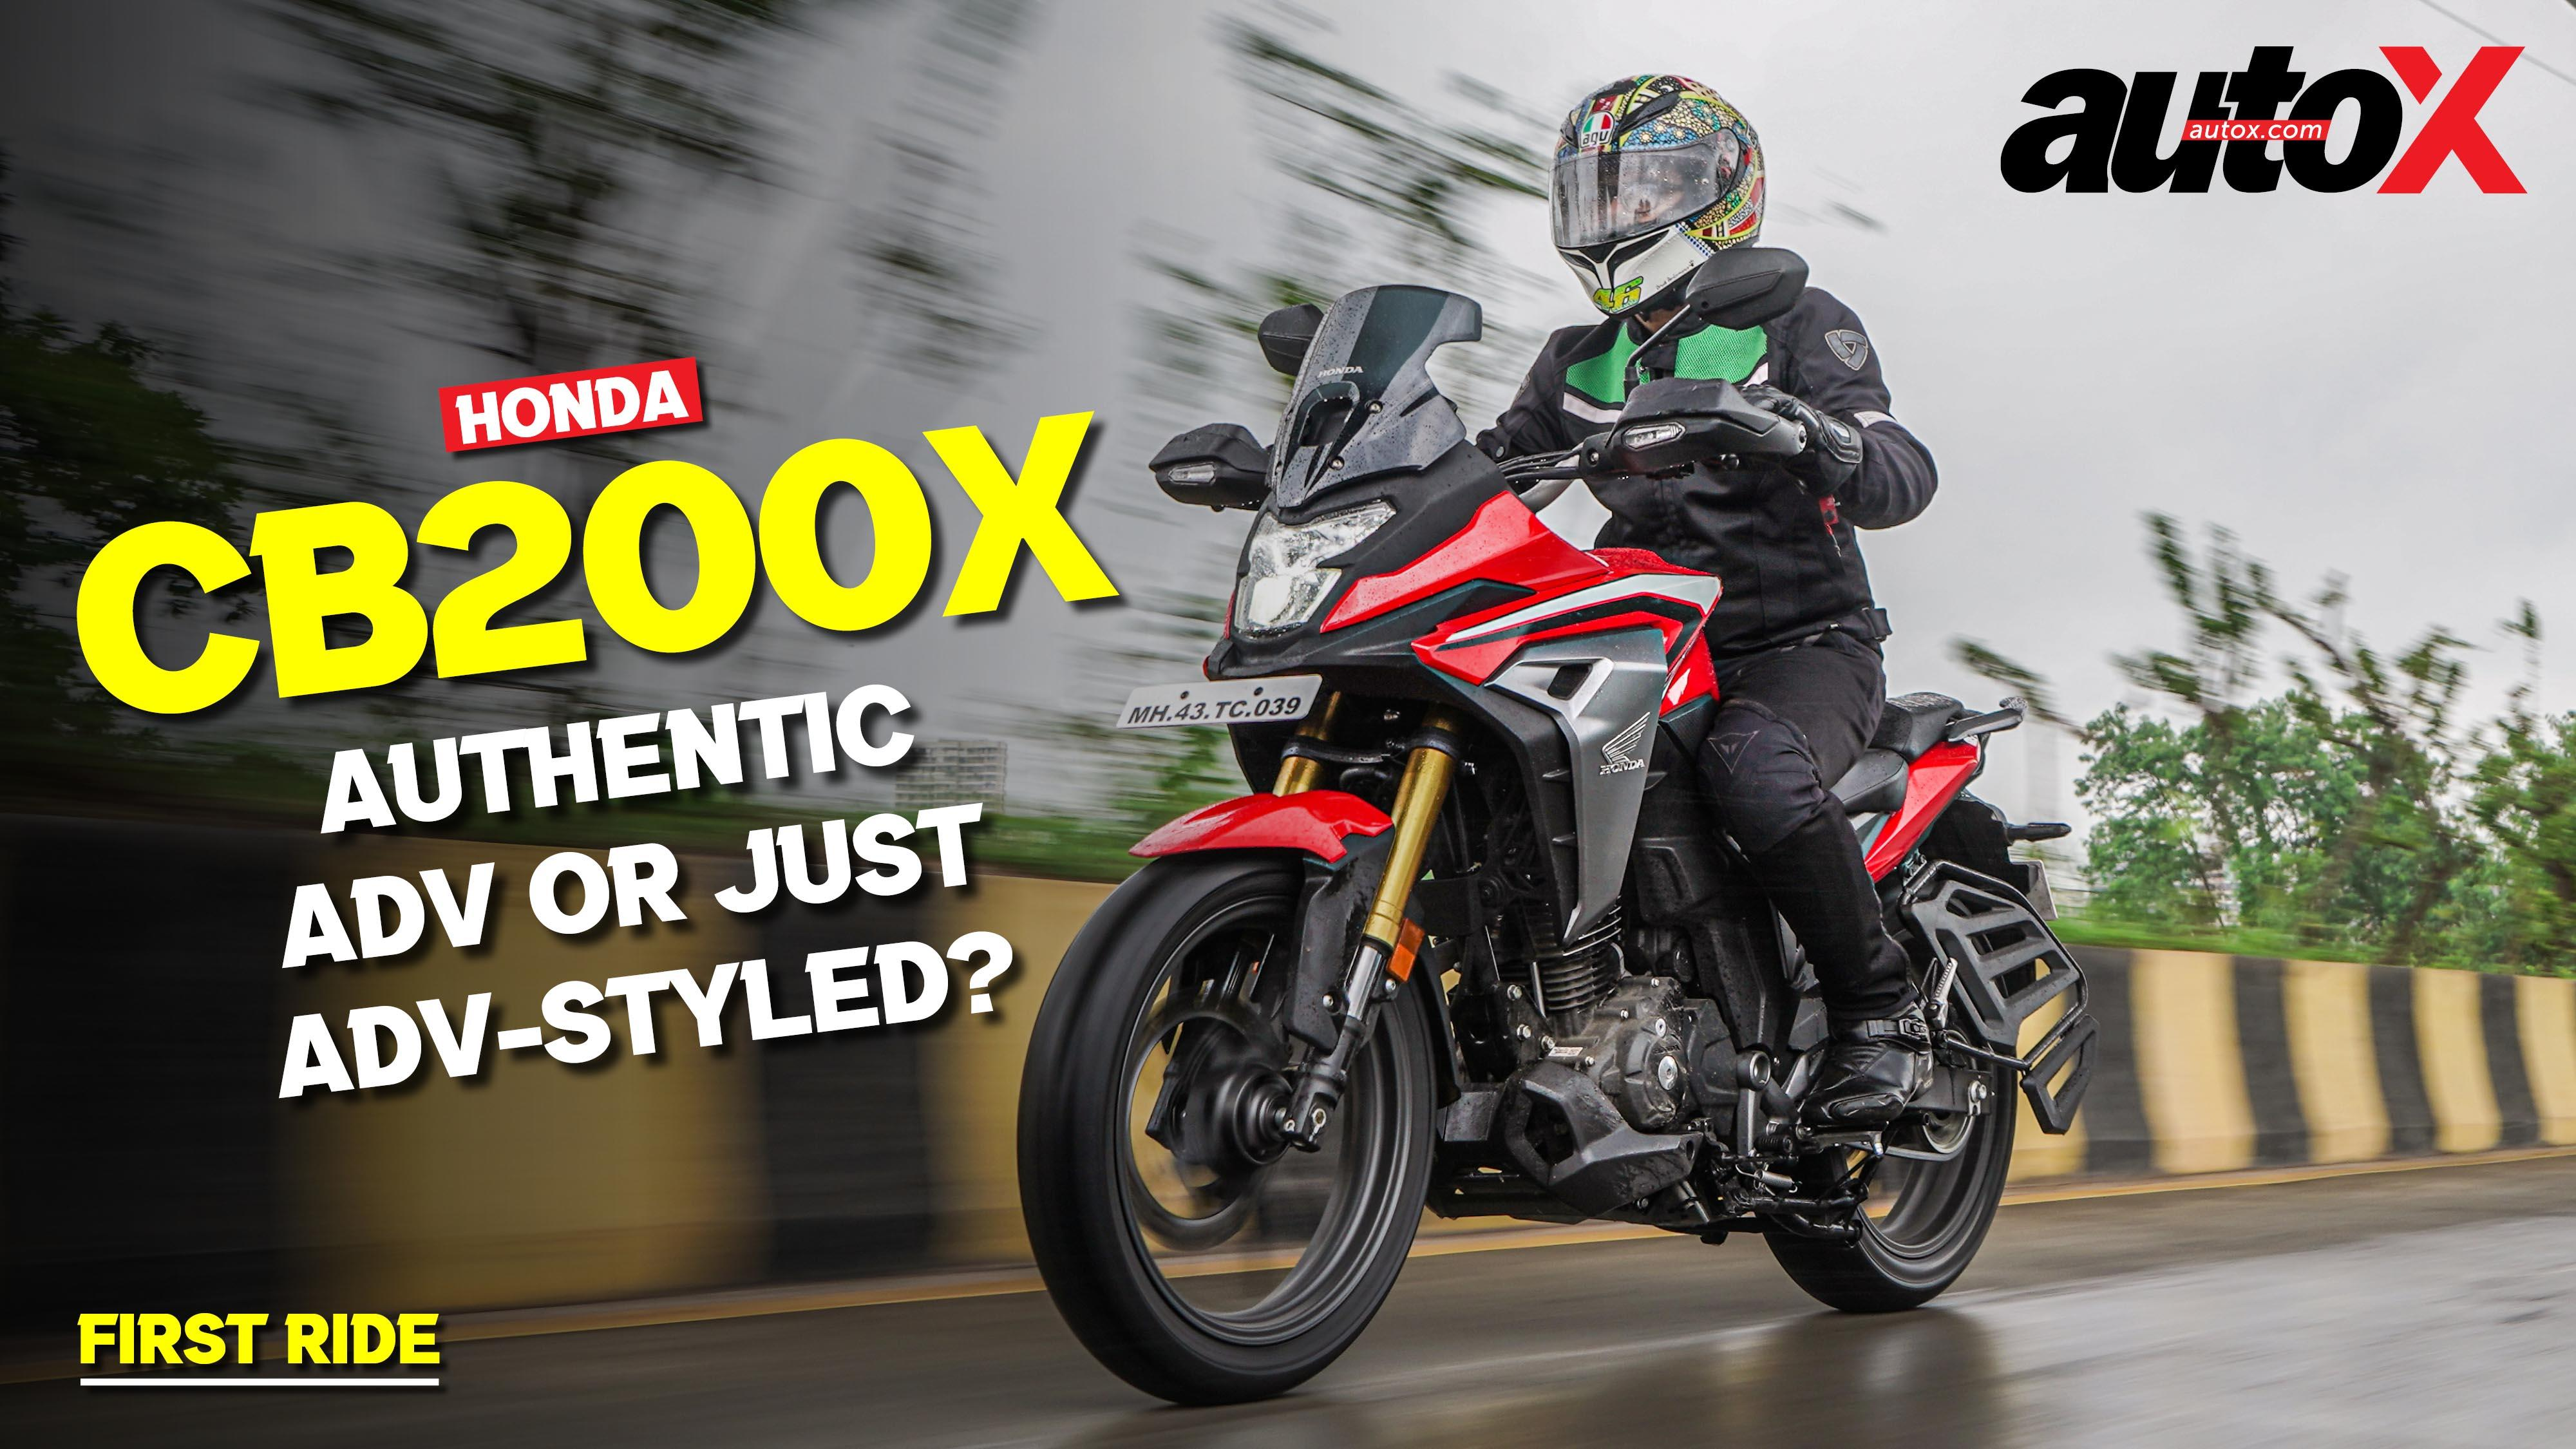 Honda CB200X: Worth the asking price? | Review | autoX